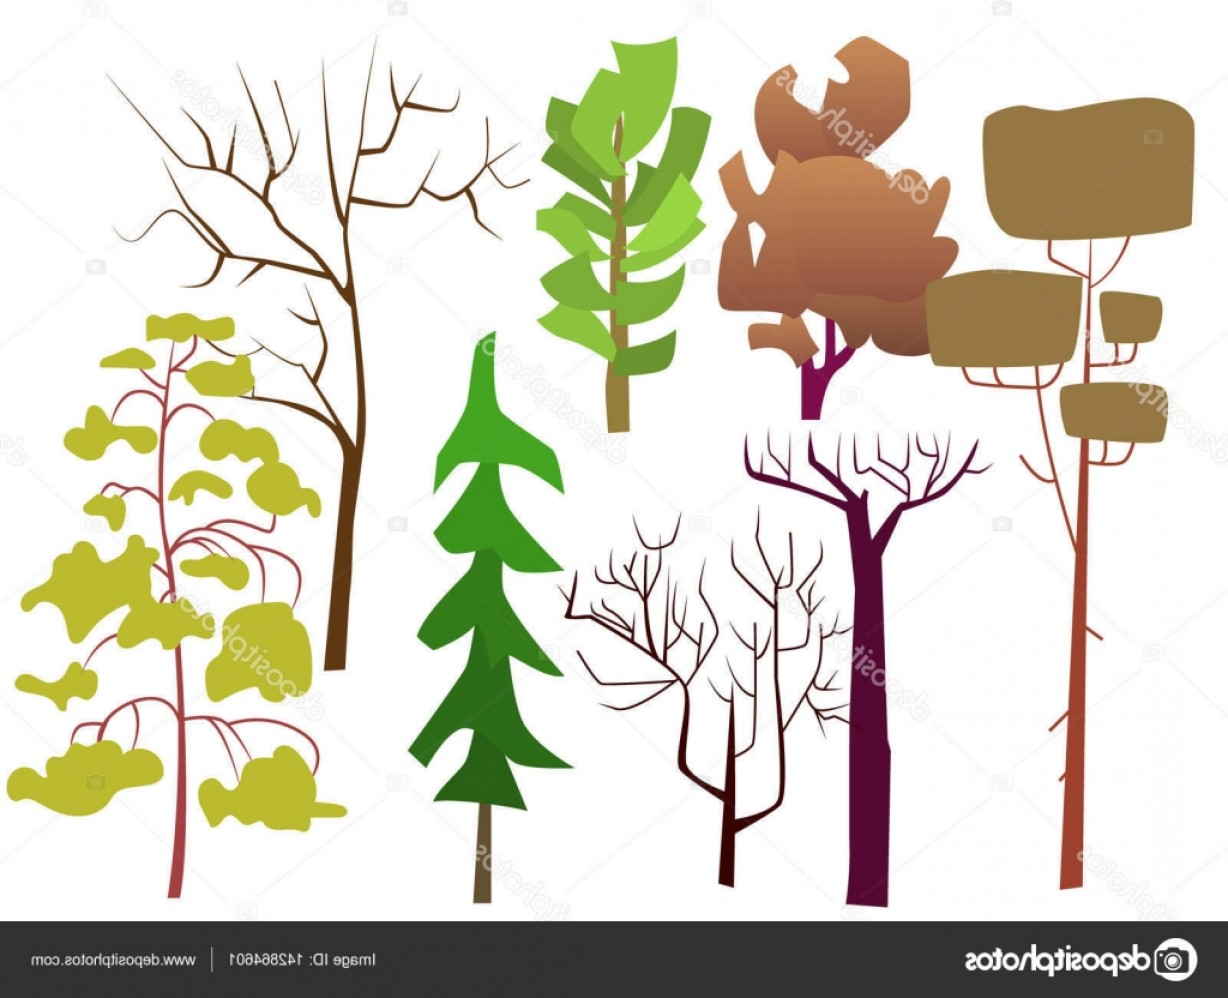 Sapling Vector Tree Silhouette Art: Stock Illustration Vector Illustration Set With Silhouettes